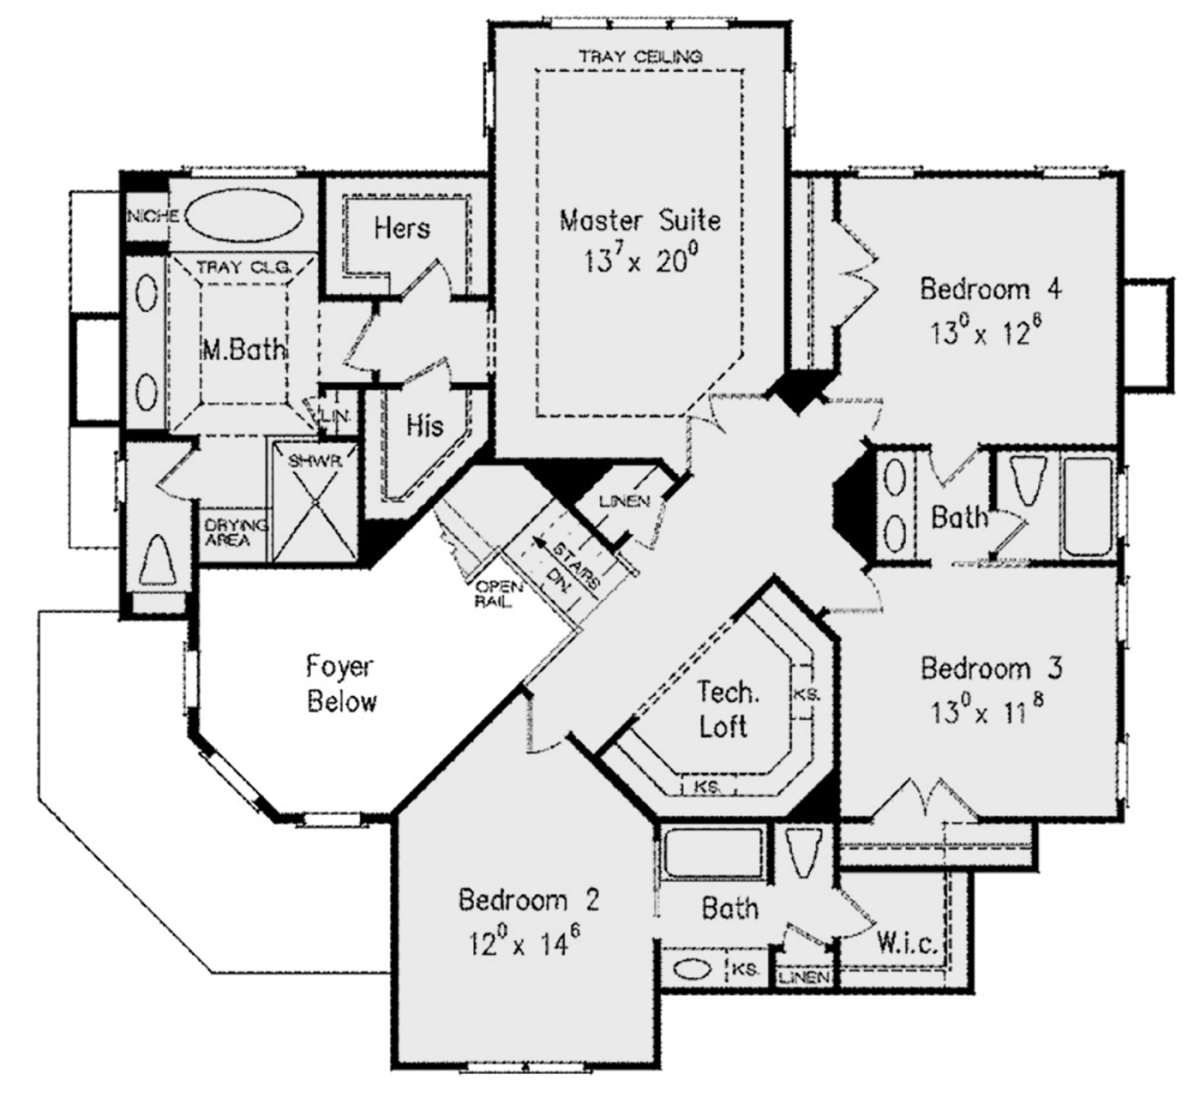 House Plan 8594 00184 European Plan 3 044 Square Feet 4 Bedrooms 3 5 Bathrooms European Plan Floor Plans House Plans